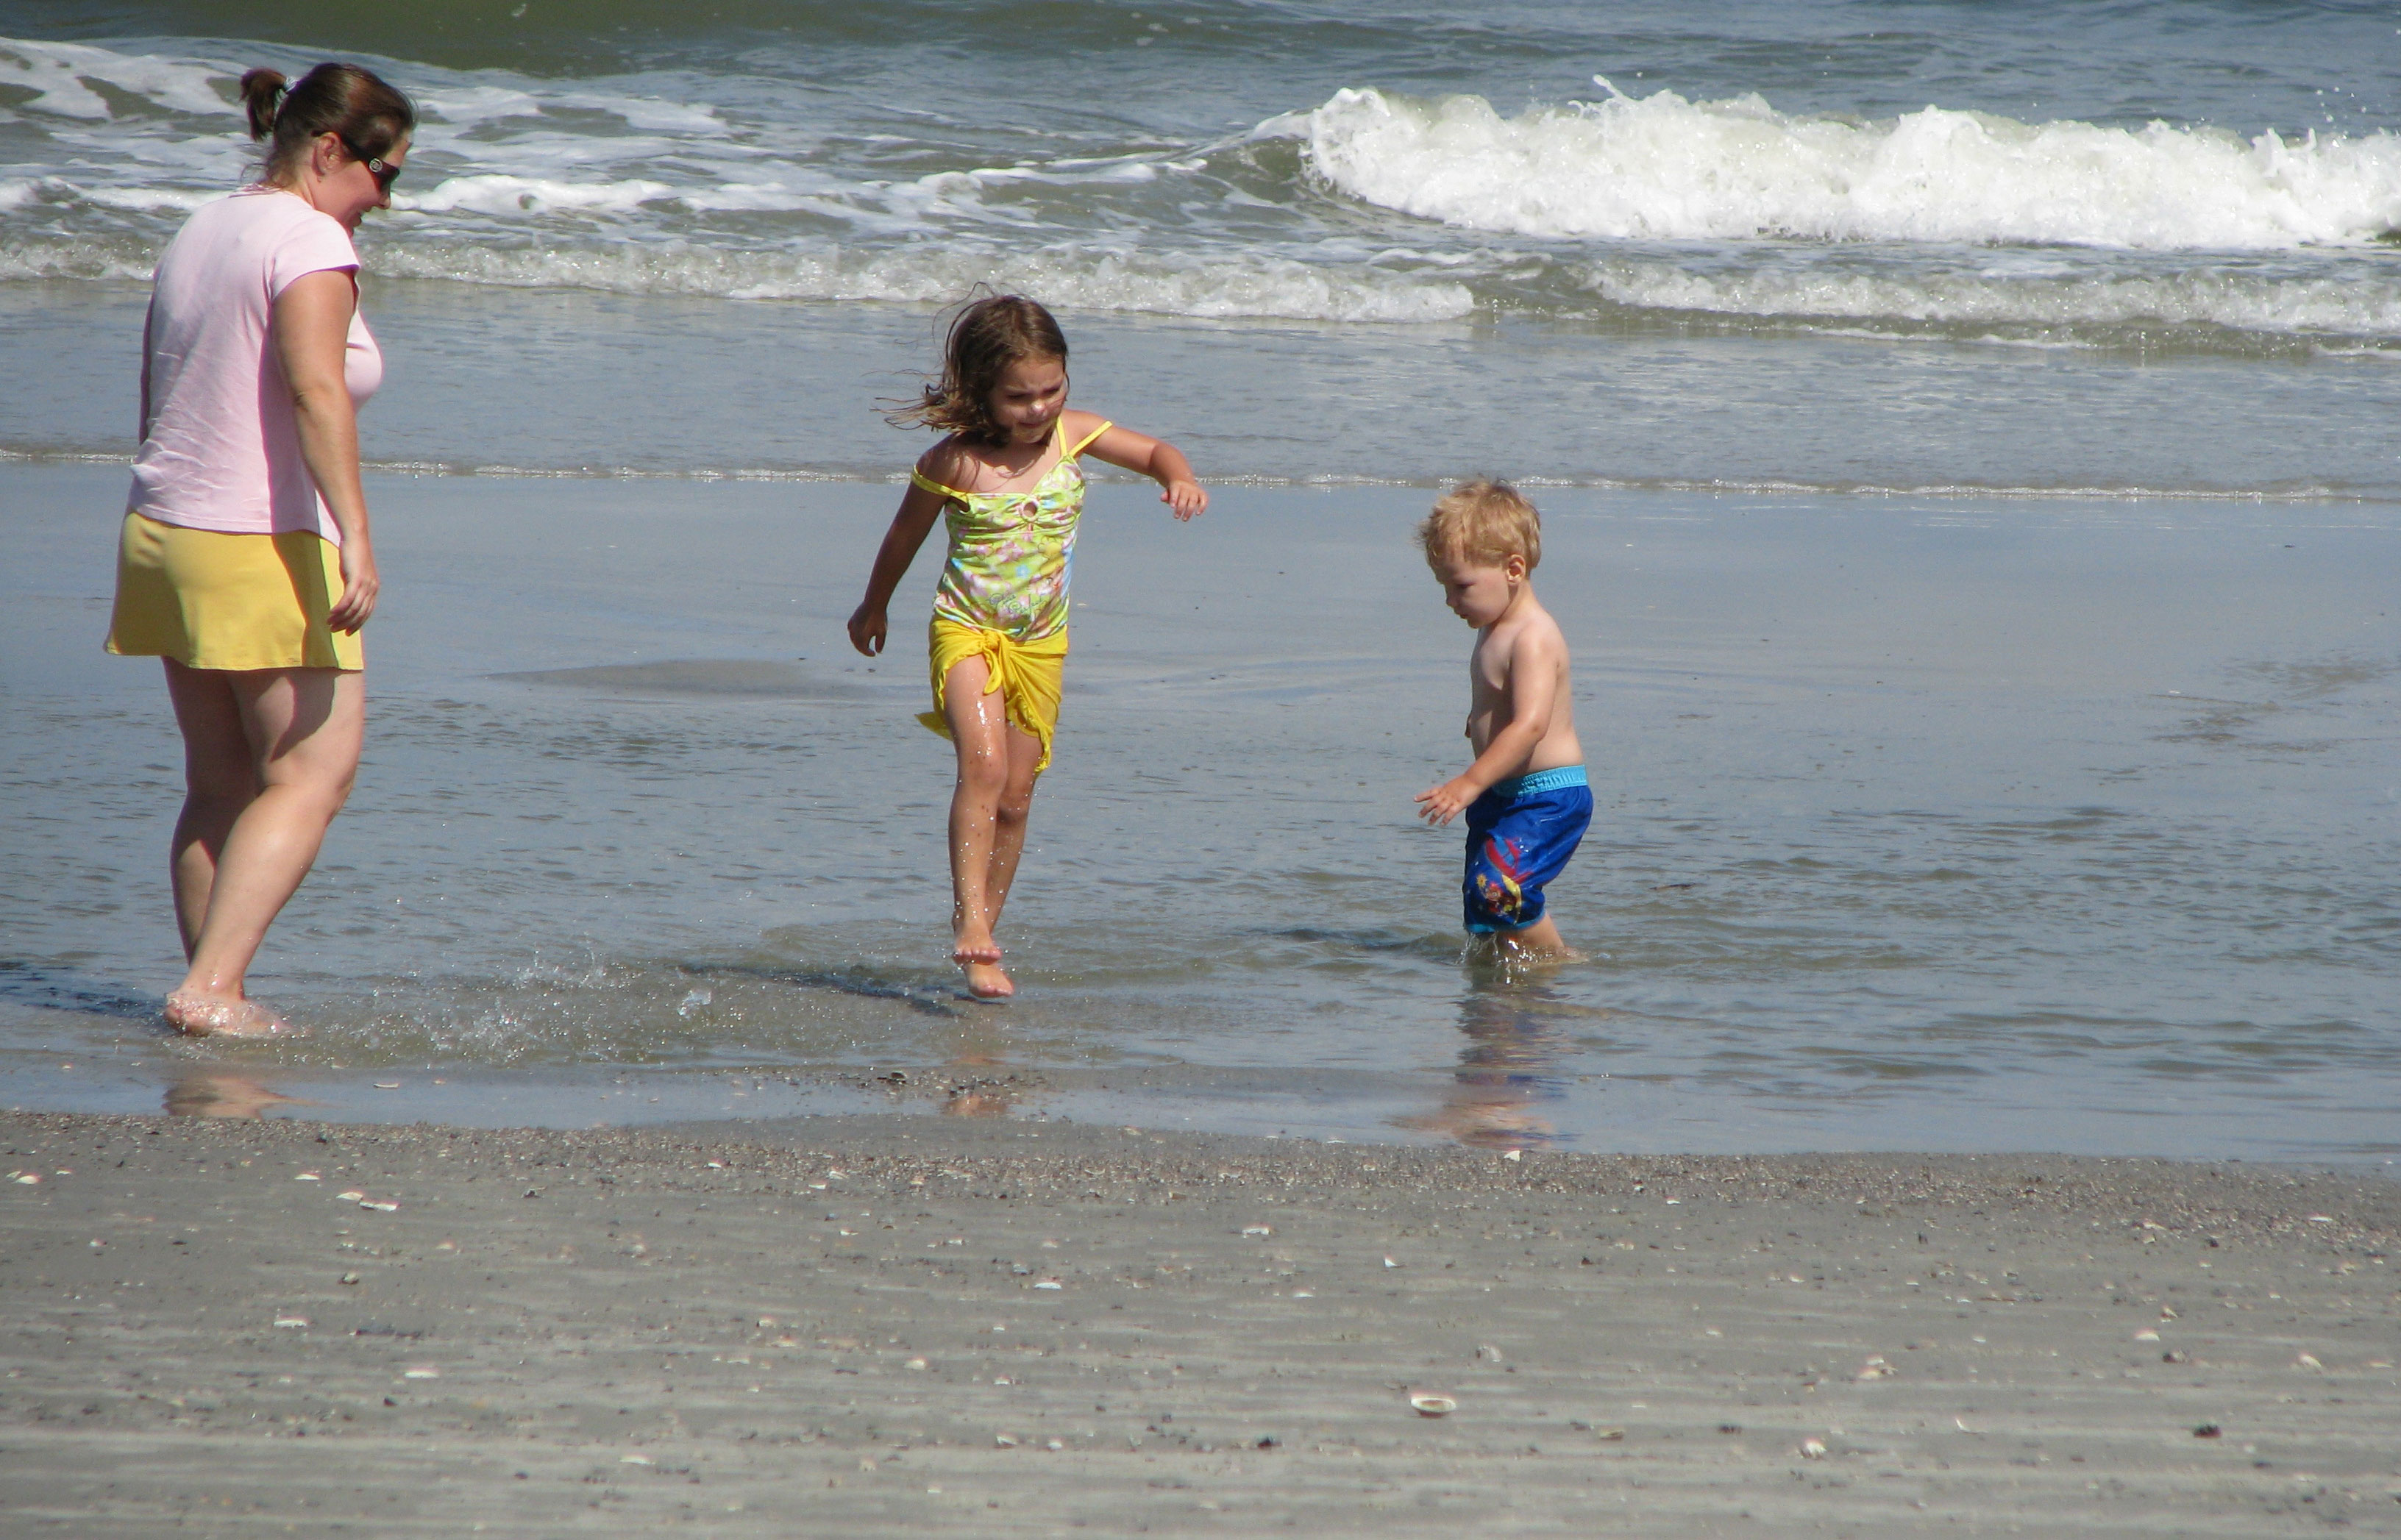 Wrapping up the day at the beach at Hunting Island State Park